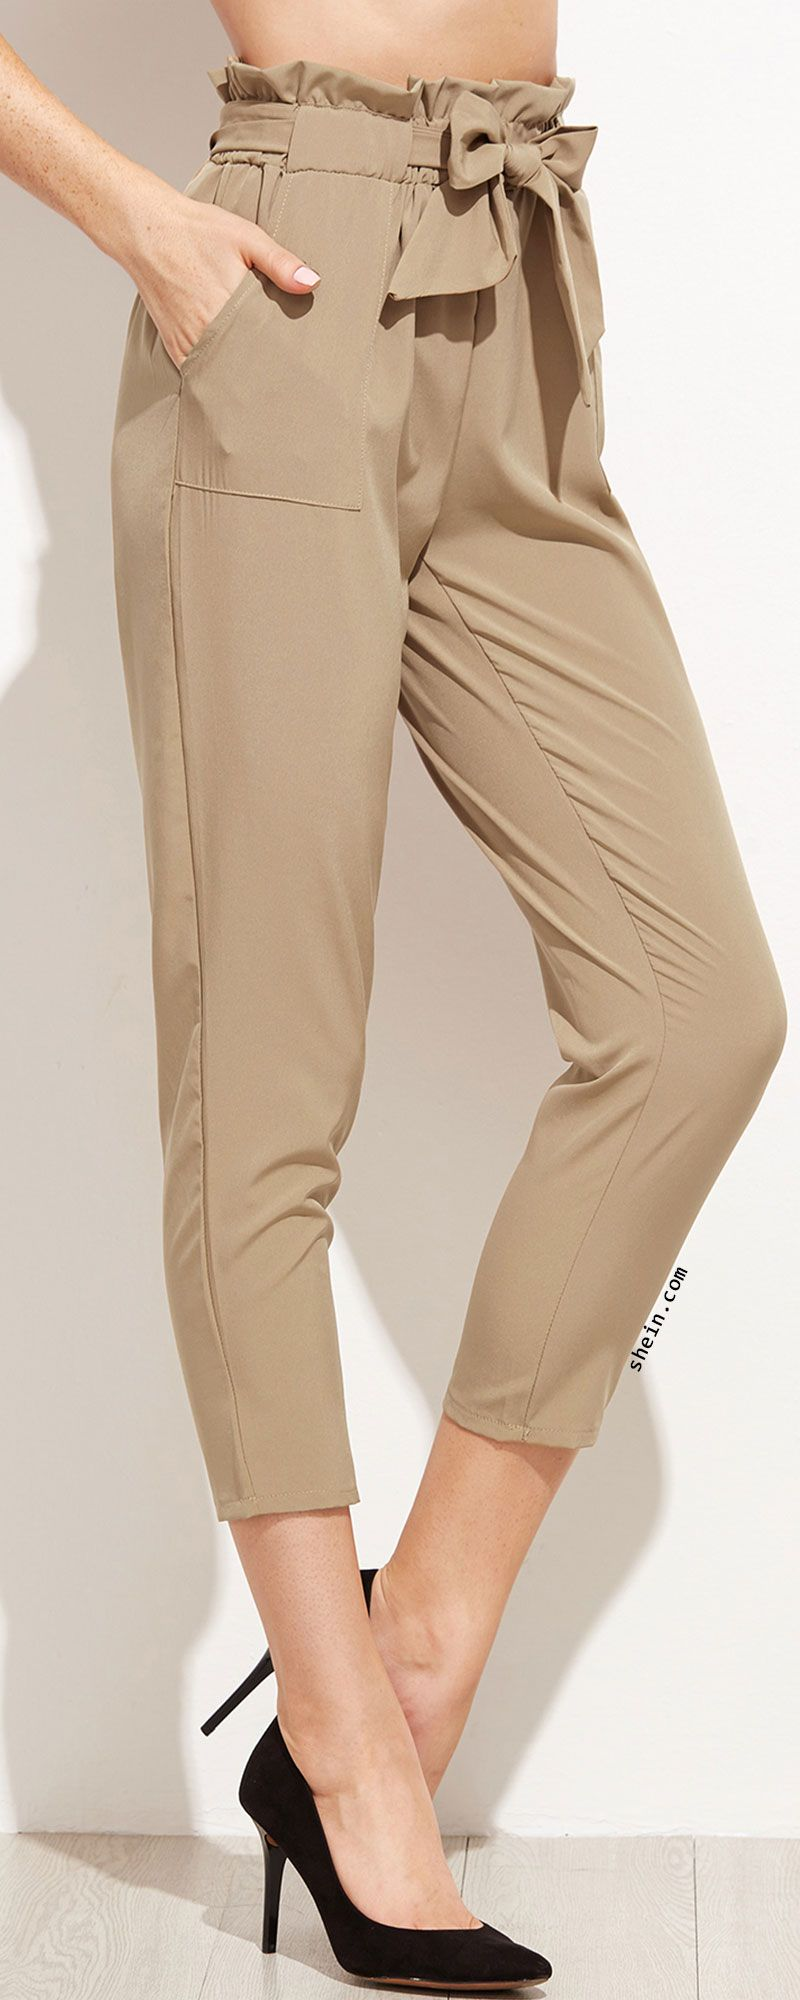 de47698e30 Khaki Tie Waist Ruffle Peg Pants | Love to Wear | Tie waist trousers ...